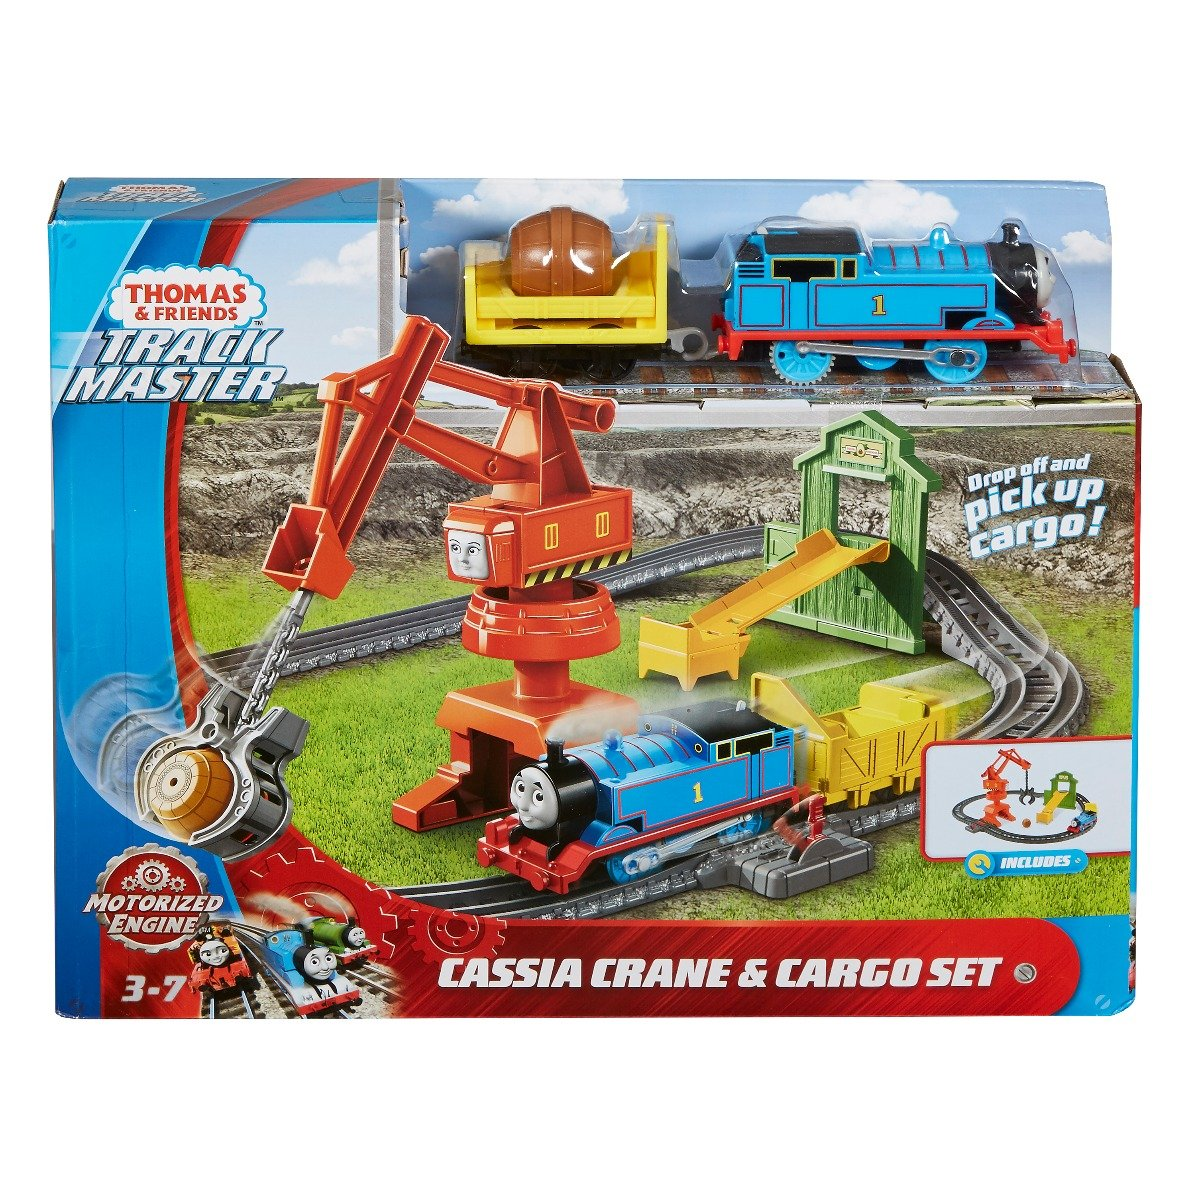 Set de joaca motorizat Thomas and Friends, Macaraua Cassia